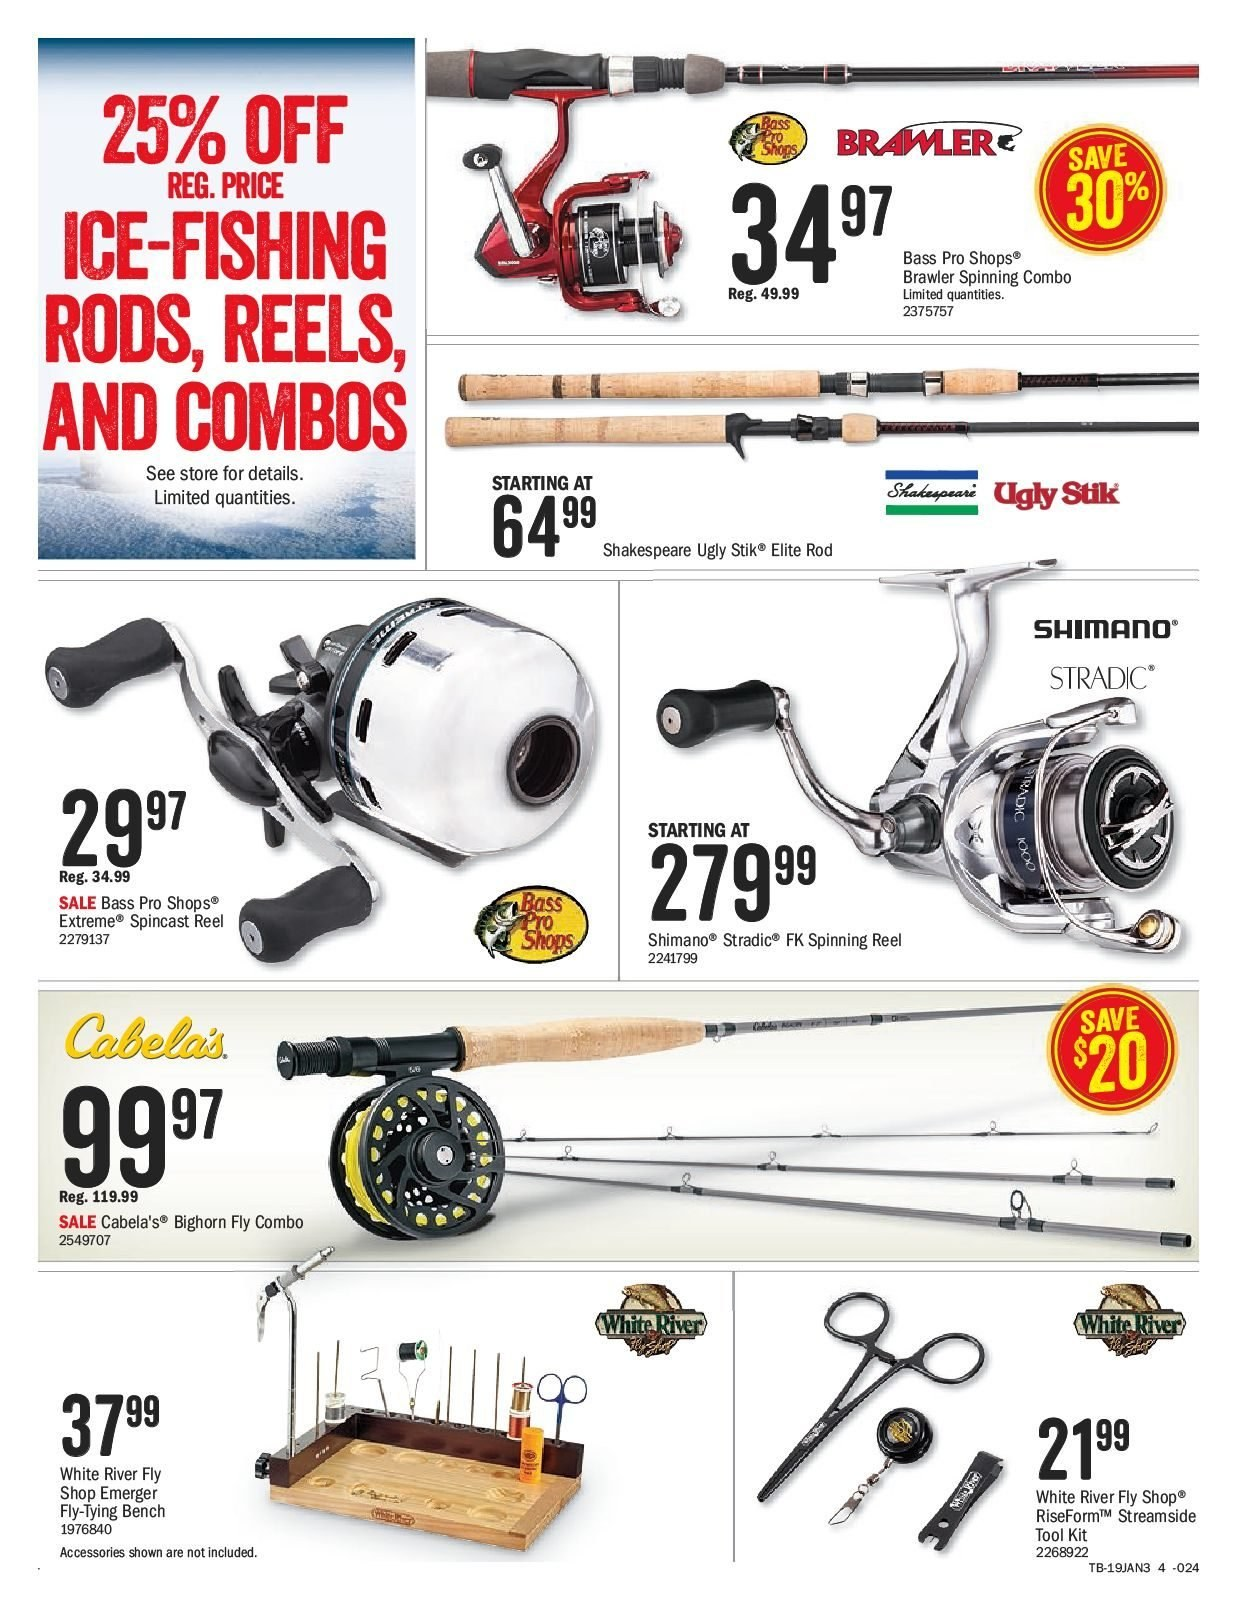 Bass Pro Shops Flyer  - January 25, 2019 - February 14, 2019. Page 4.